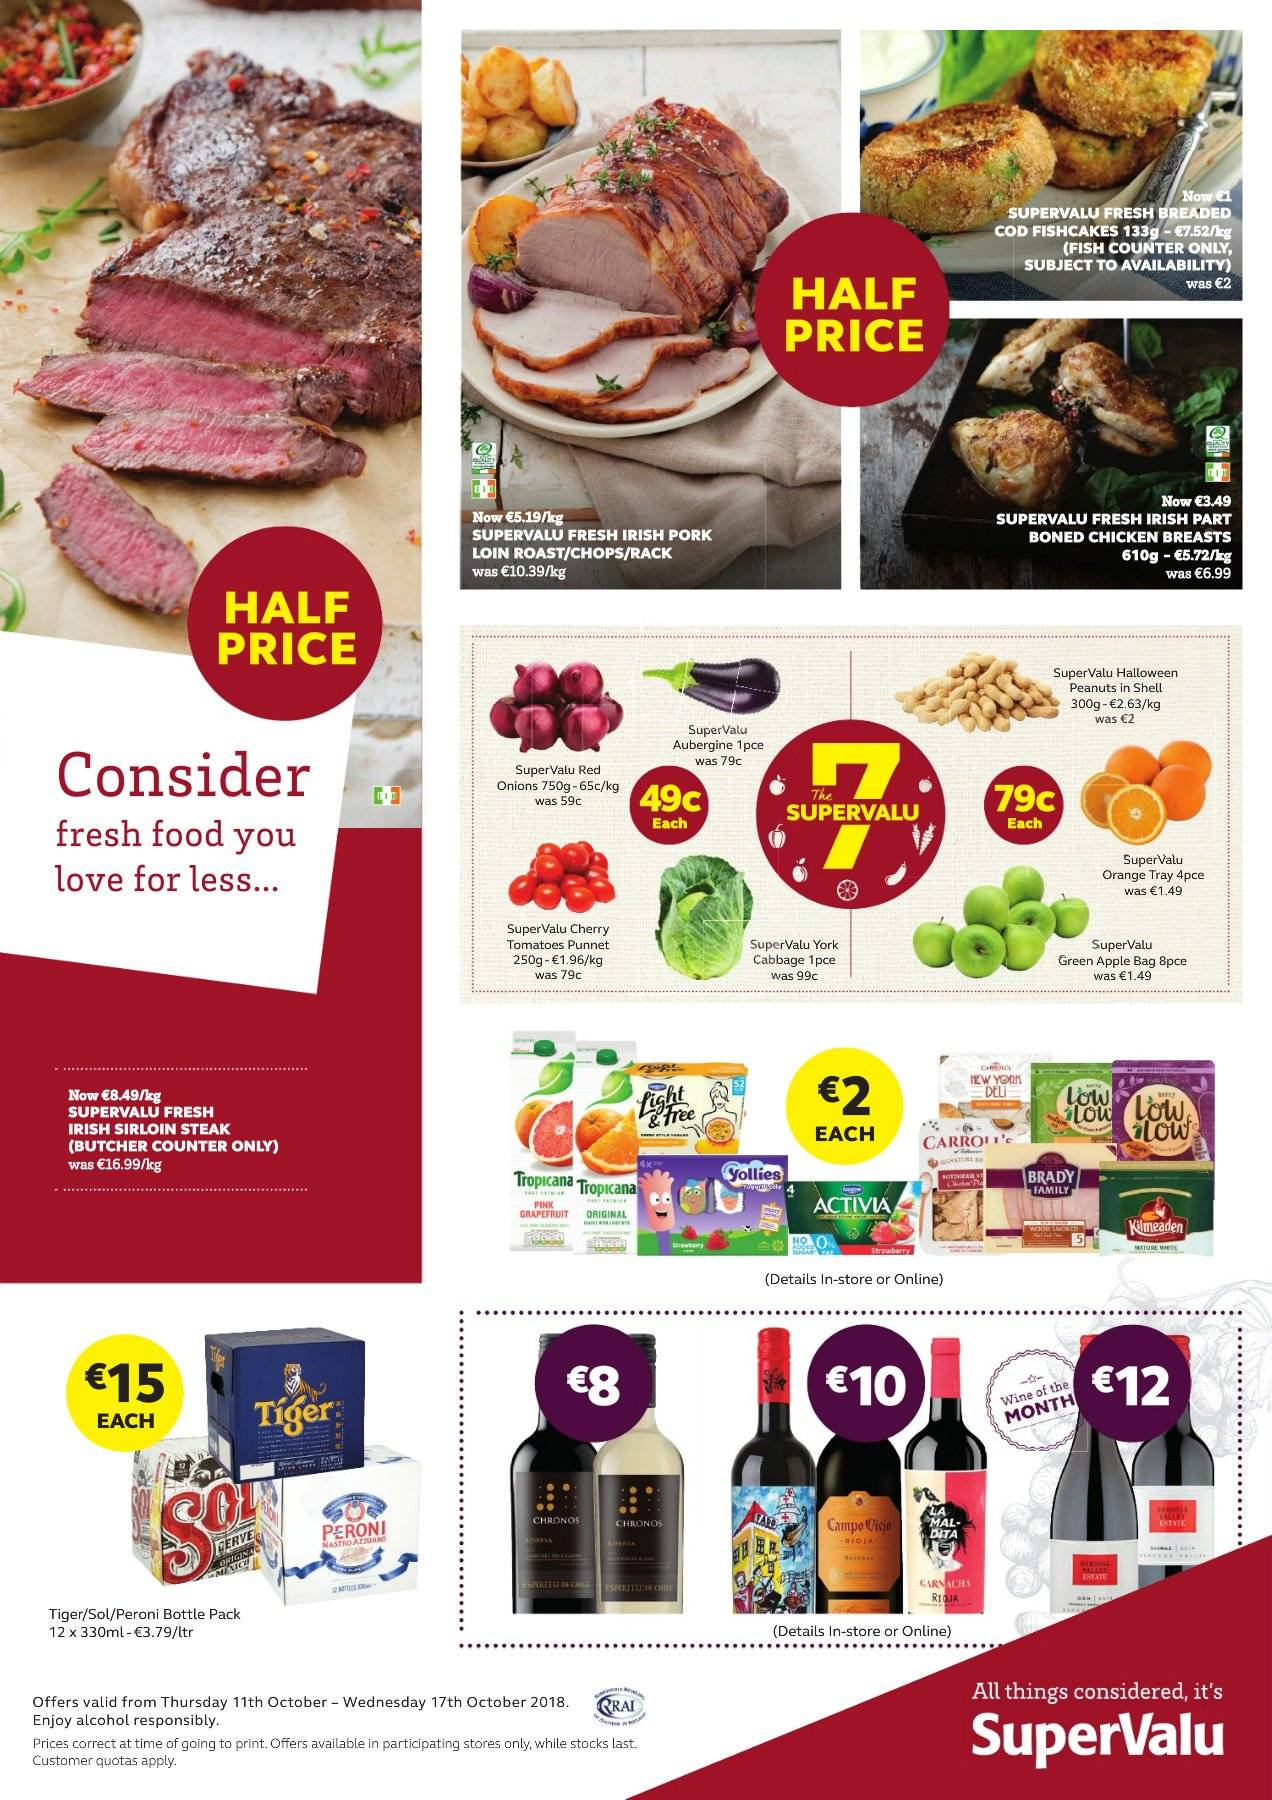 SuperValu offer  - 11.10.2018 - 17.10.2018 - Sales products - cod, fish, fish cake, alcohol, ron, Peroni, Sol, chicken, chicken breasts, beef sirloin, steak, sirloin steak. Page 1.